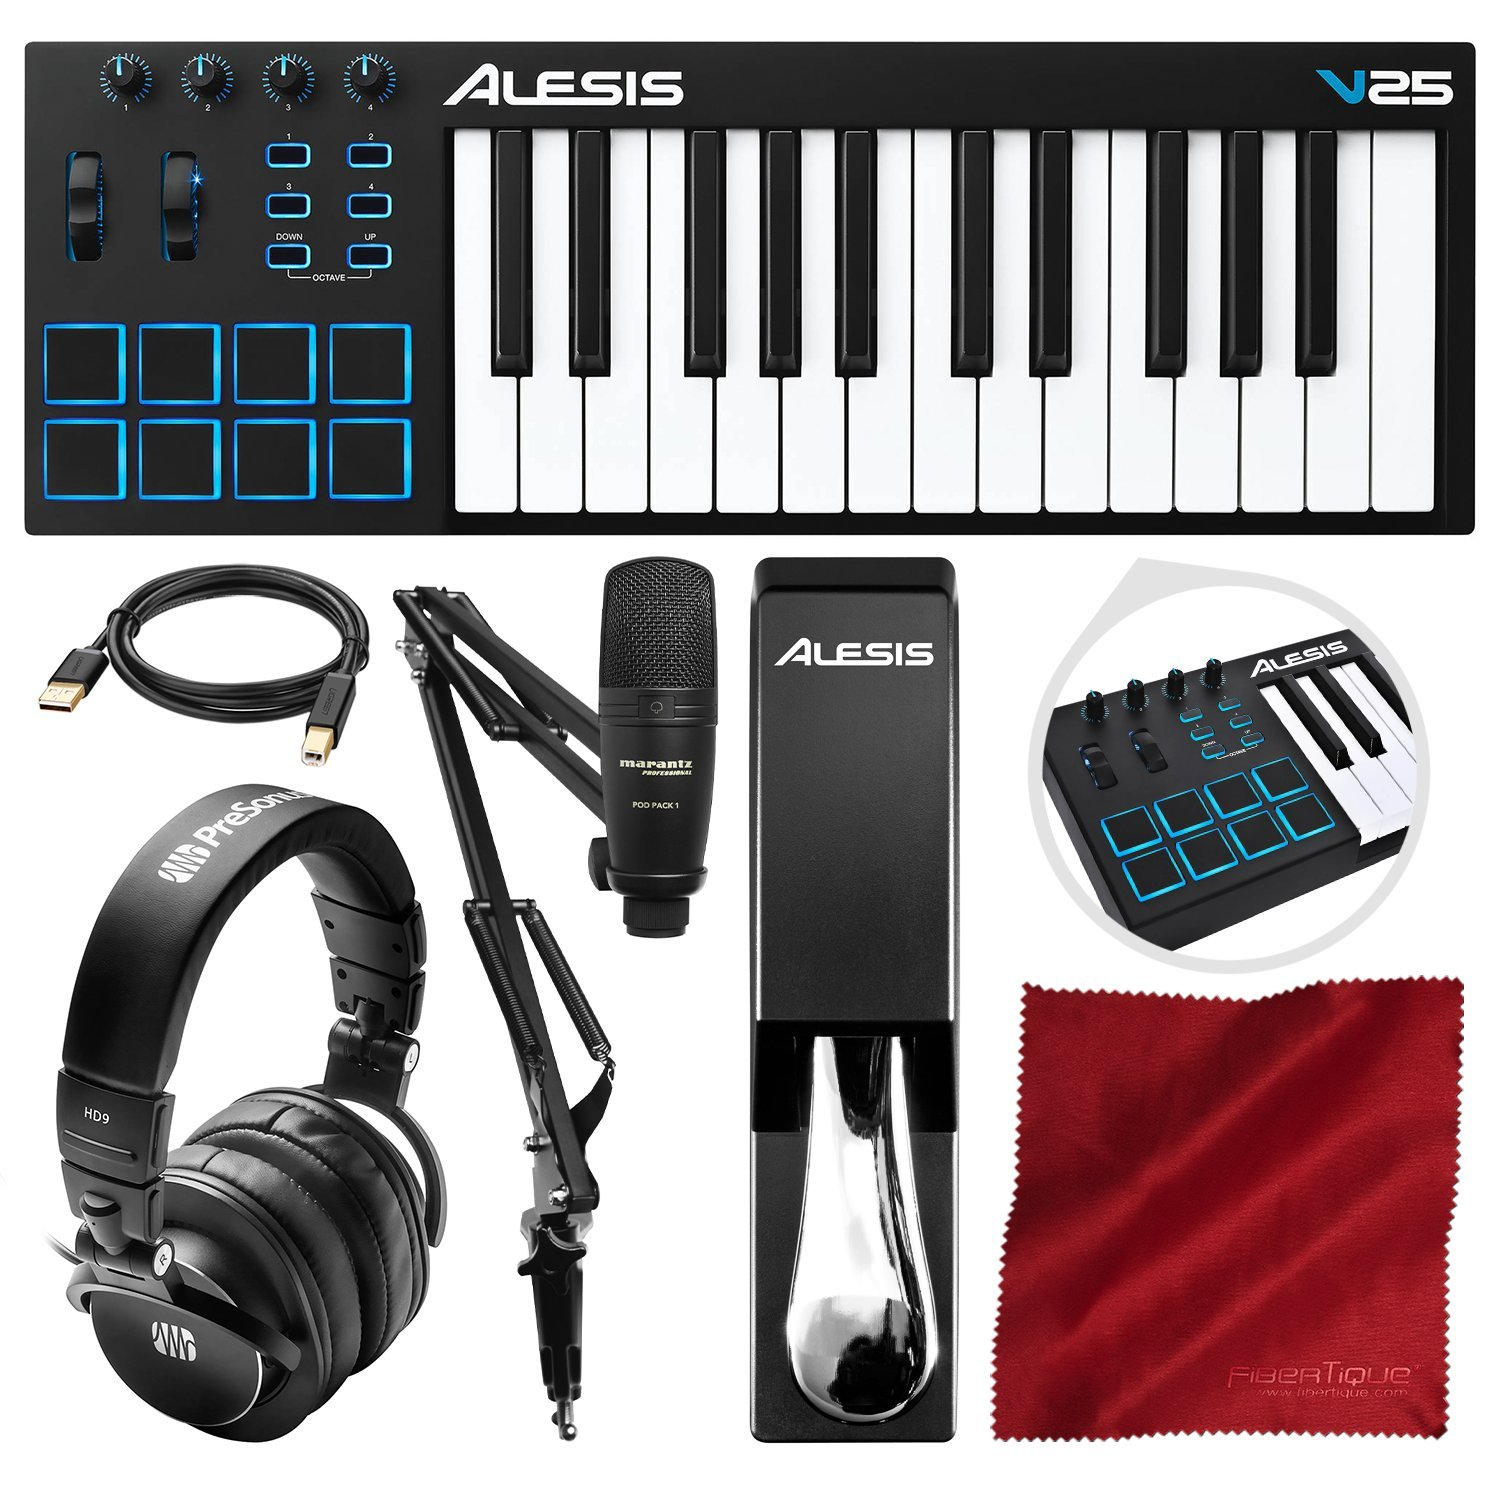 Alesis V25 25-Key USB MIDI Keyboard Controller & Drum Pad with Marantz Pod Pack 1 Broadcasting Kit, PreSonus Headphones, Sustain Pedal, and Platinum Bundle by Alesis